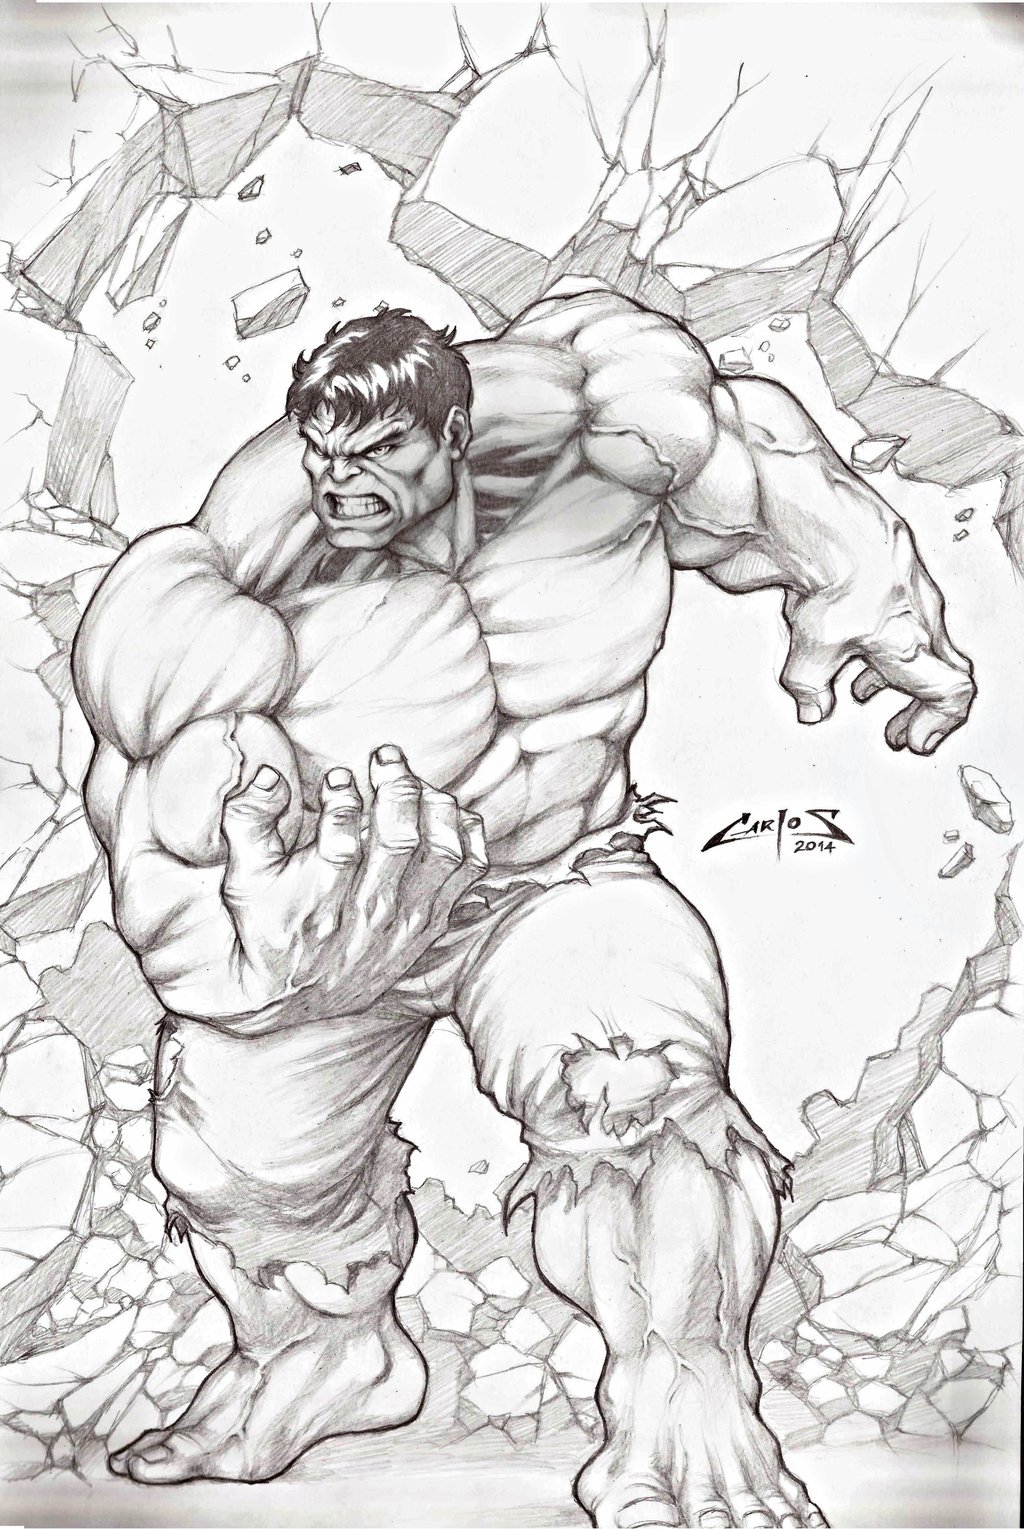 1024x1529 Incredible Hulk !!! By Carlosbragaart80